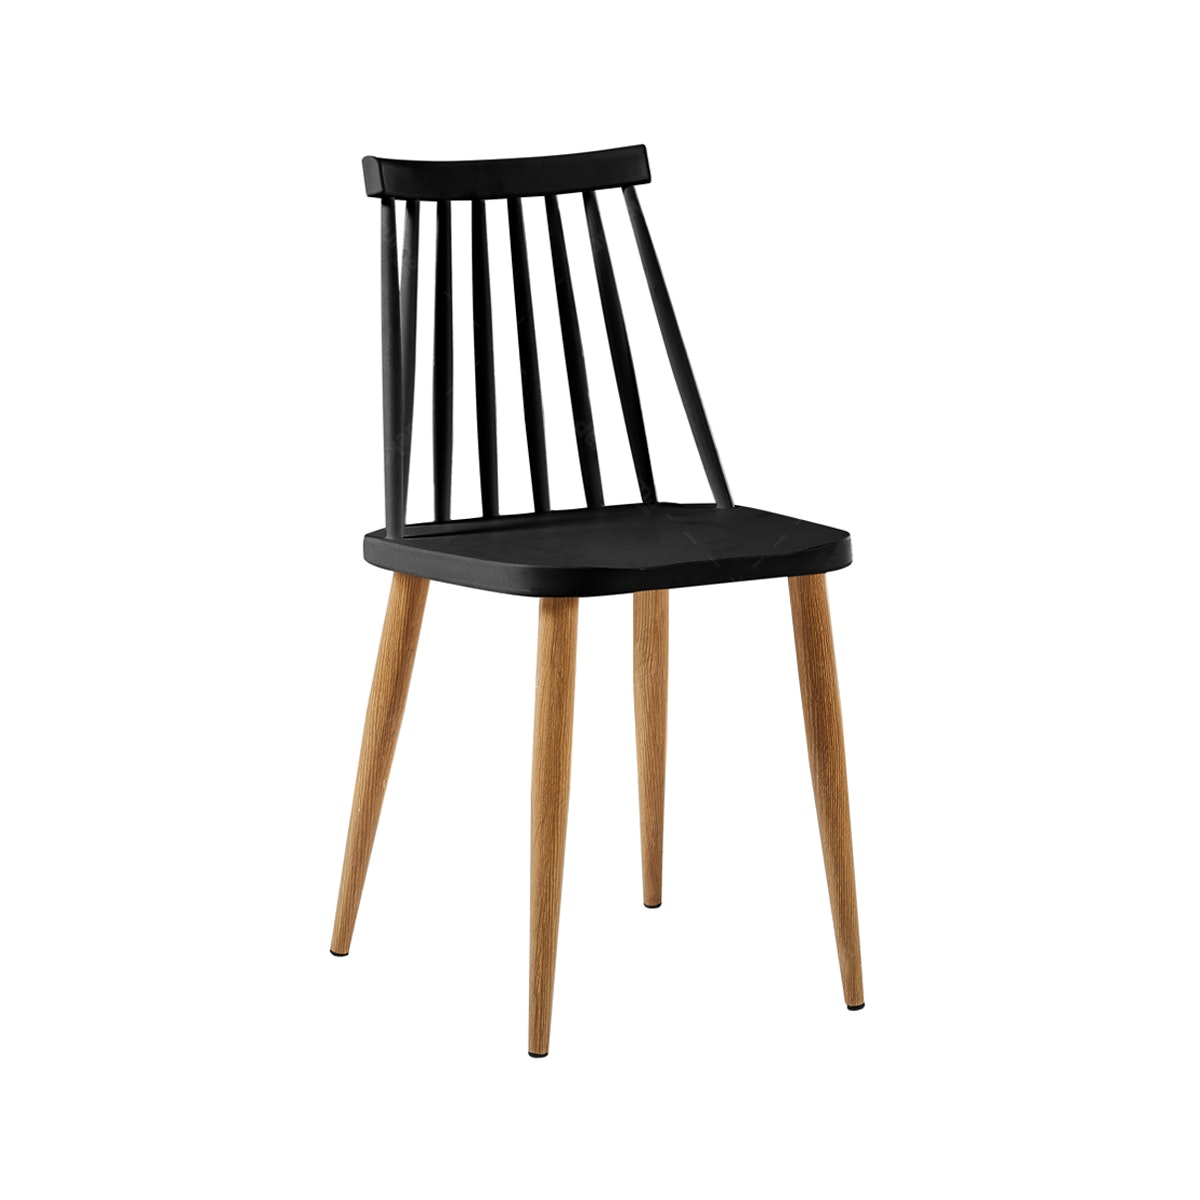 JYSK Dining Chair KLAR 50X42X79 Cm Black